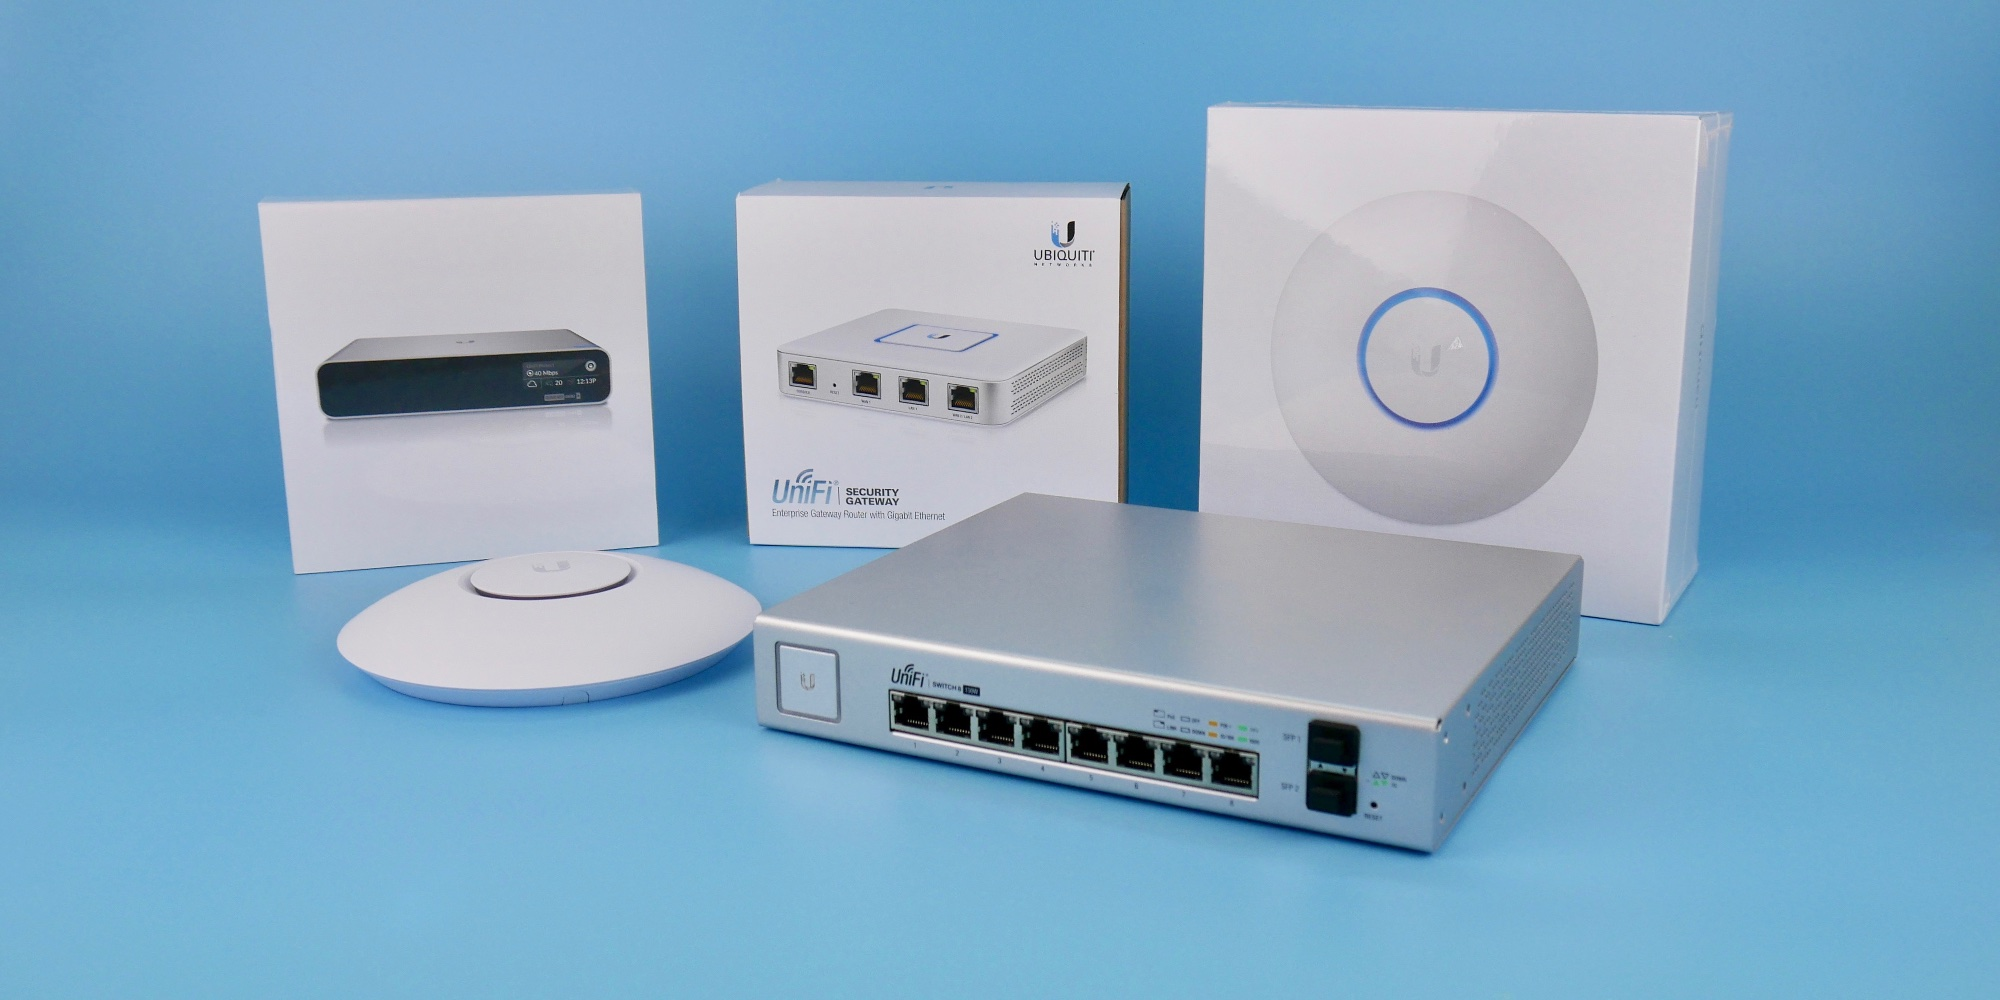 UniFi Starter Kit Giveaway: Win $895 worth of Ubiquiti gear - 9to5Toys